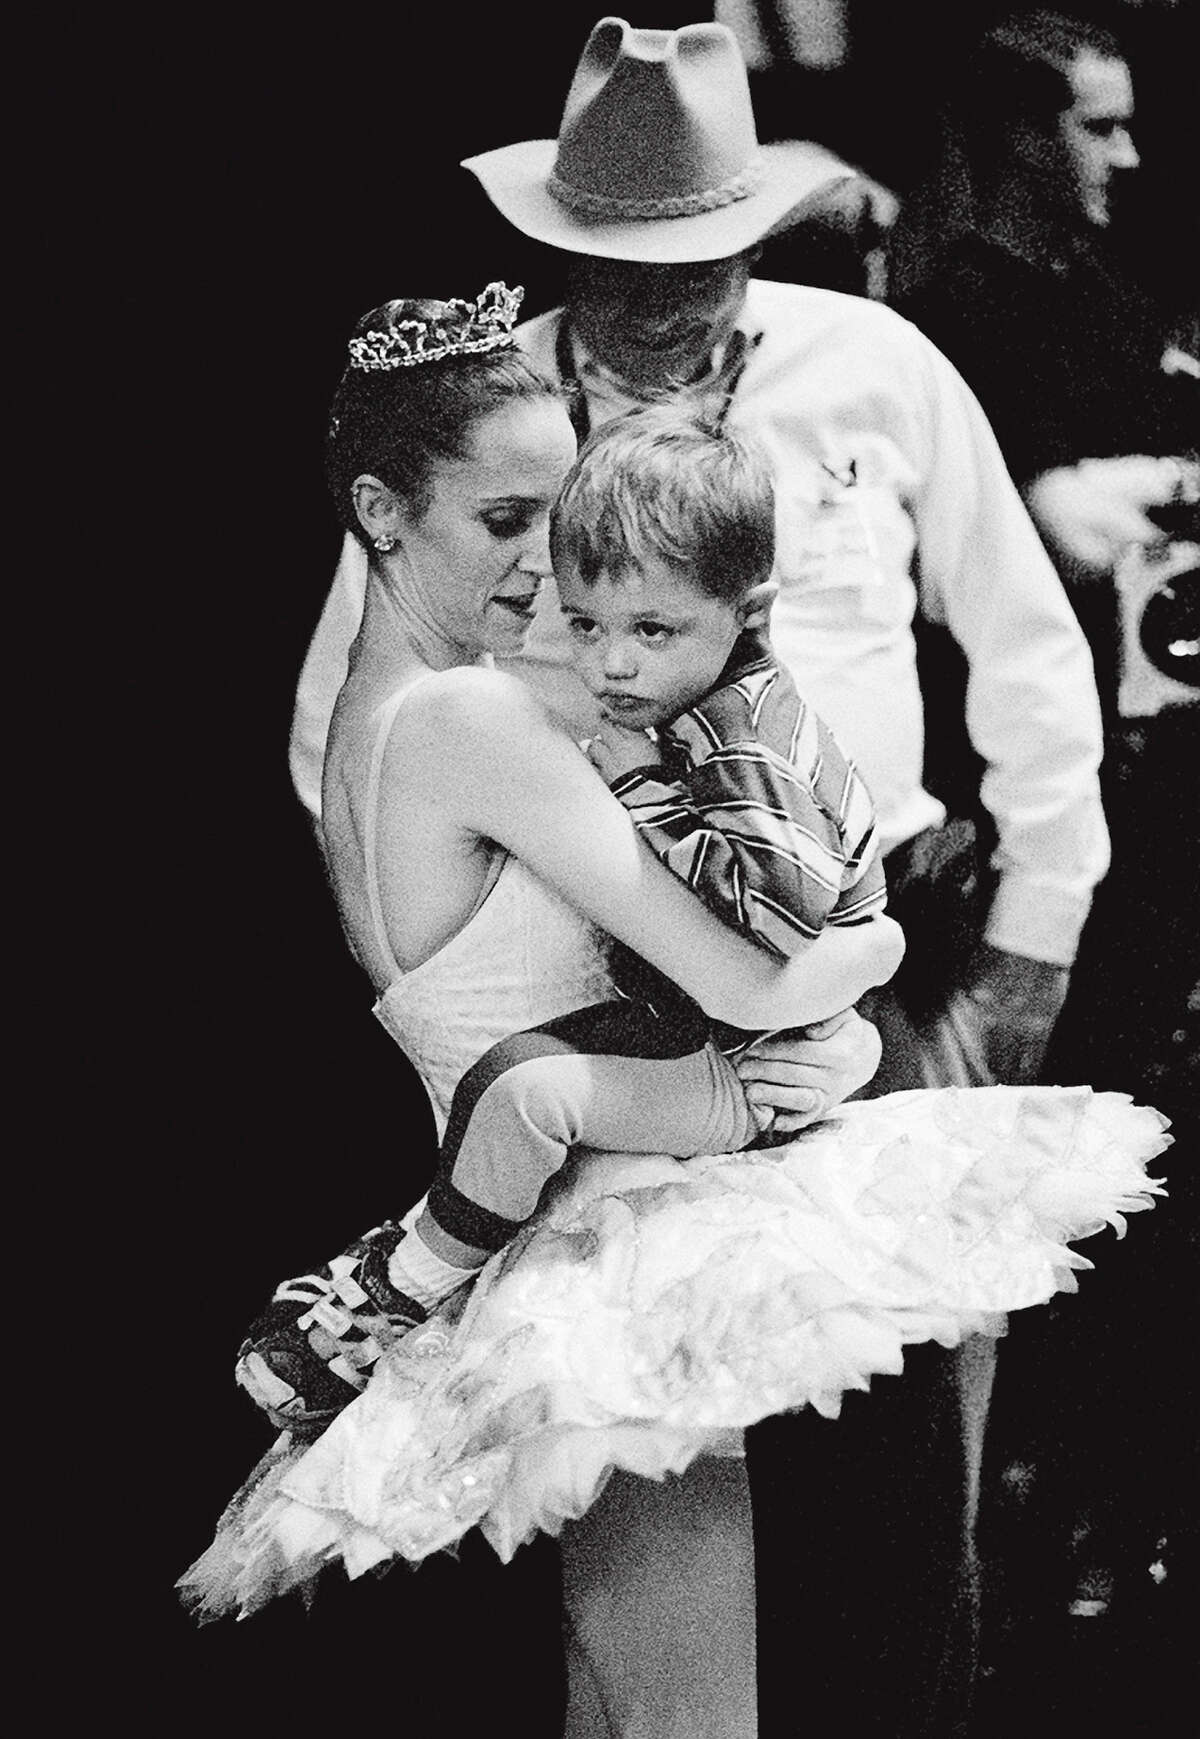 """Tina LeBlanc cuddles son Marinko during a dress rehearsal of """"Nutcracker."""" The photo appears in """"Balancing Acts"""" (Princeton Architectural Press), for which photographer Lucy Gray followed three ballerina mothers over the course of 15 years."""